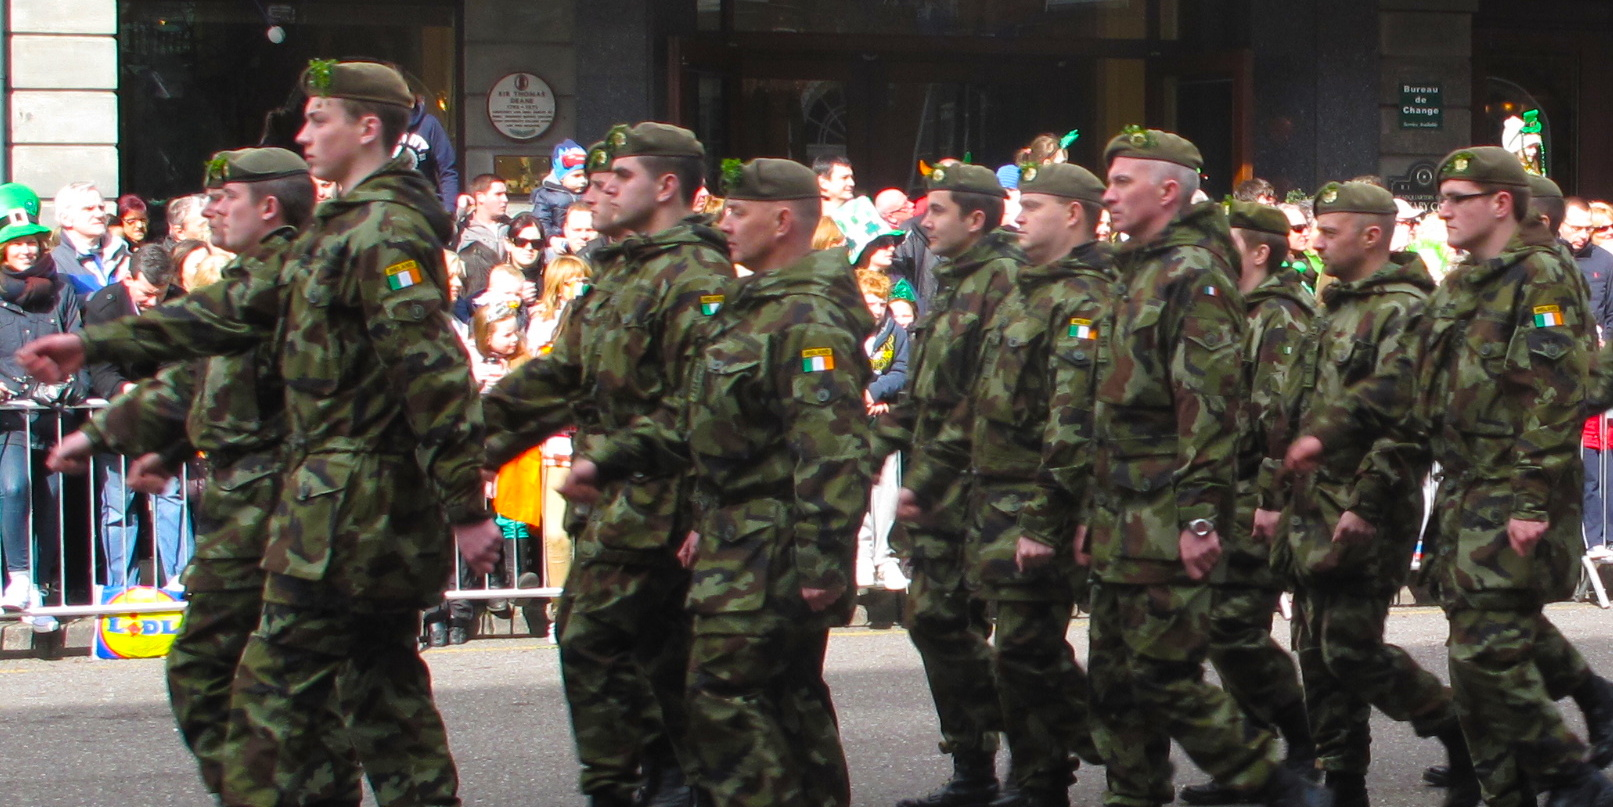 St_Patricks_Day_Parade_Cork_Ireland_South_Mall_Army_Fatigues